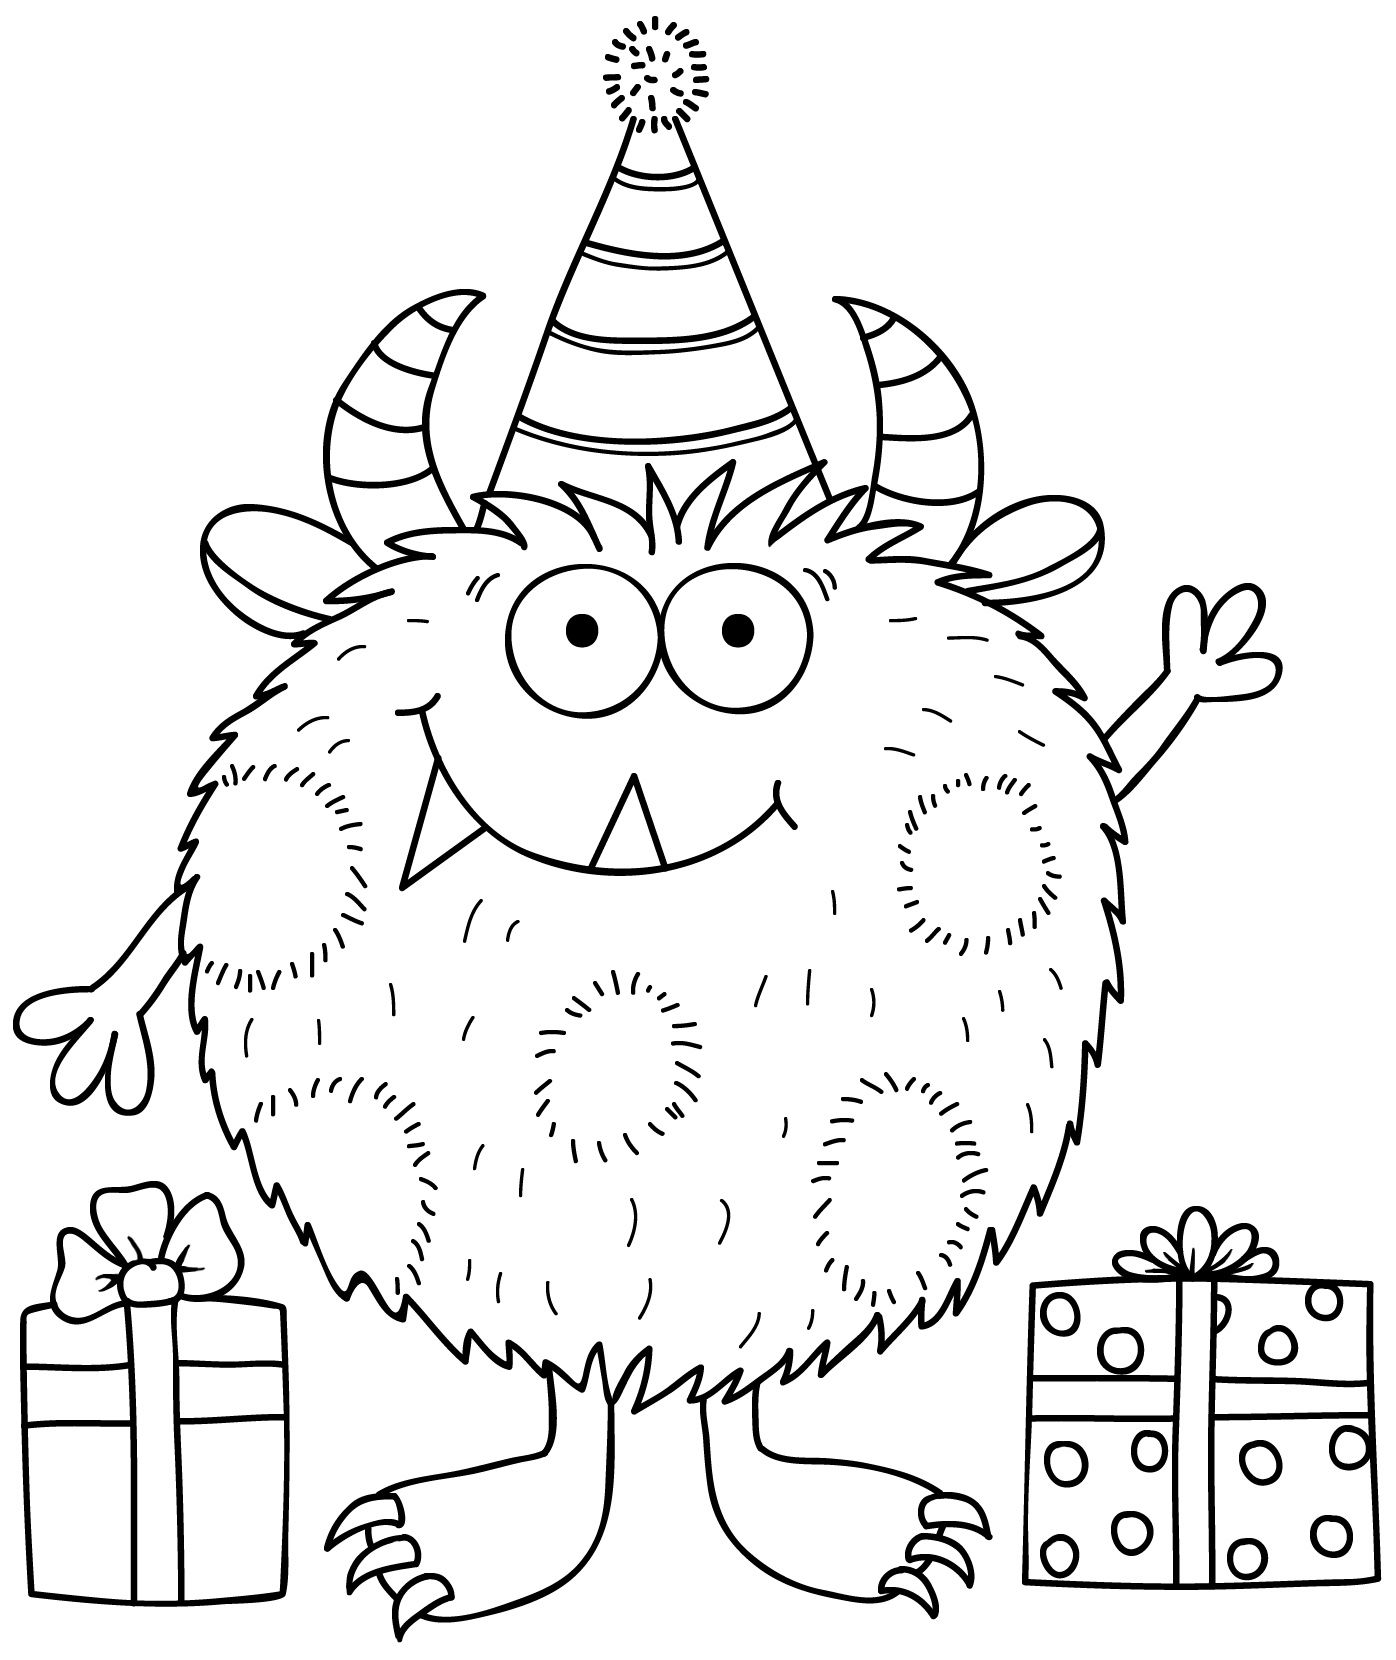 Katehadfielddesigns Google Suche Monster Coloring Pages